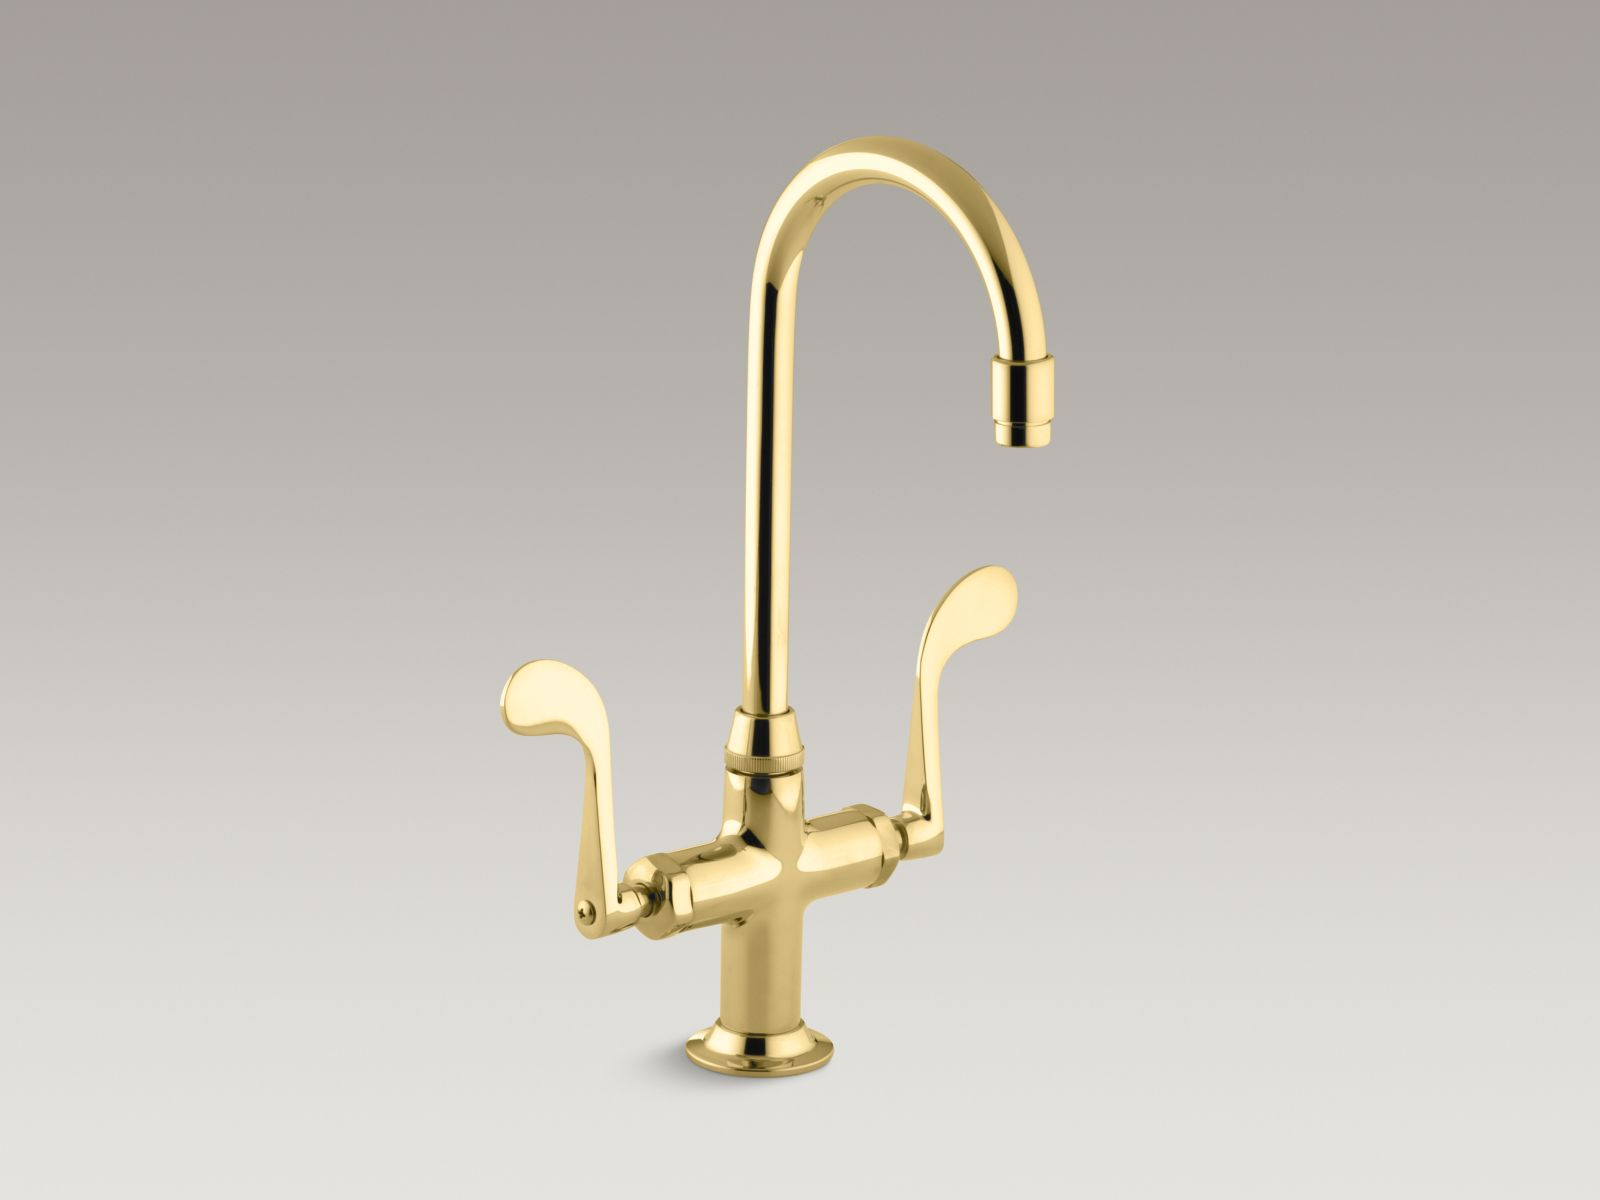 Kohler K-8761-PB Essex Entertainment Sink Faucet Vibrant Polished Brass